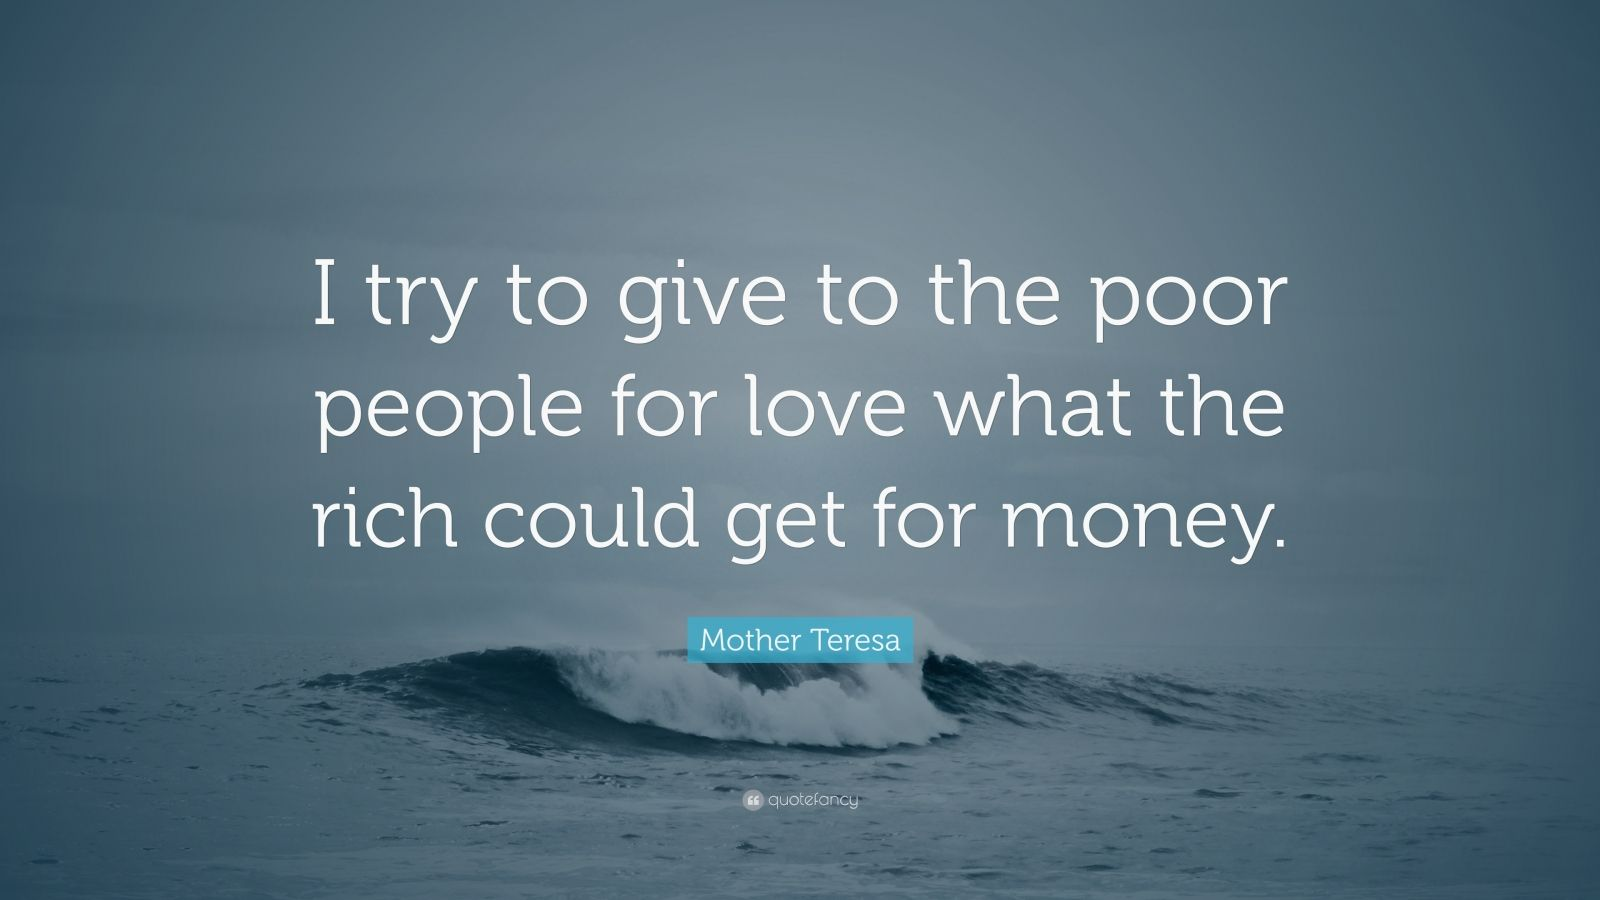 """Mother Teresa Quote: """"I try to give to the poor people for love what the rich could get for money."""""""